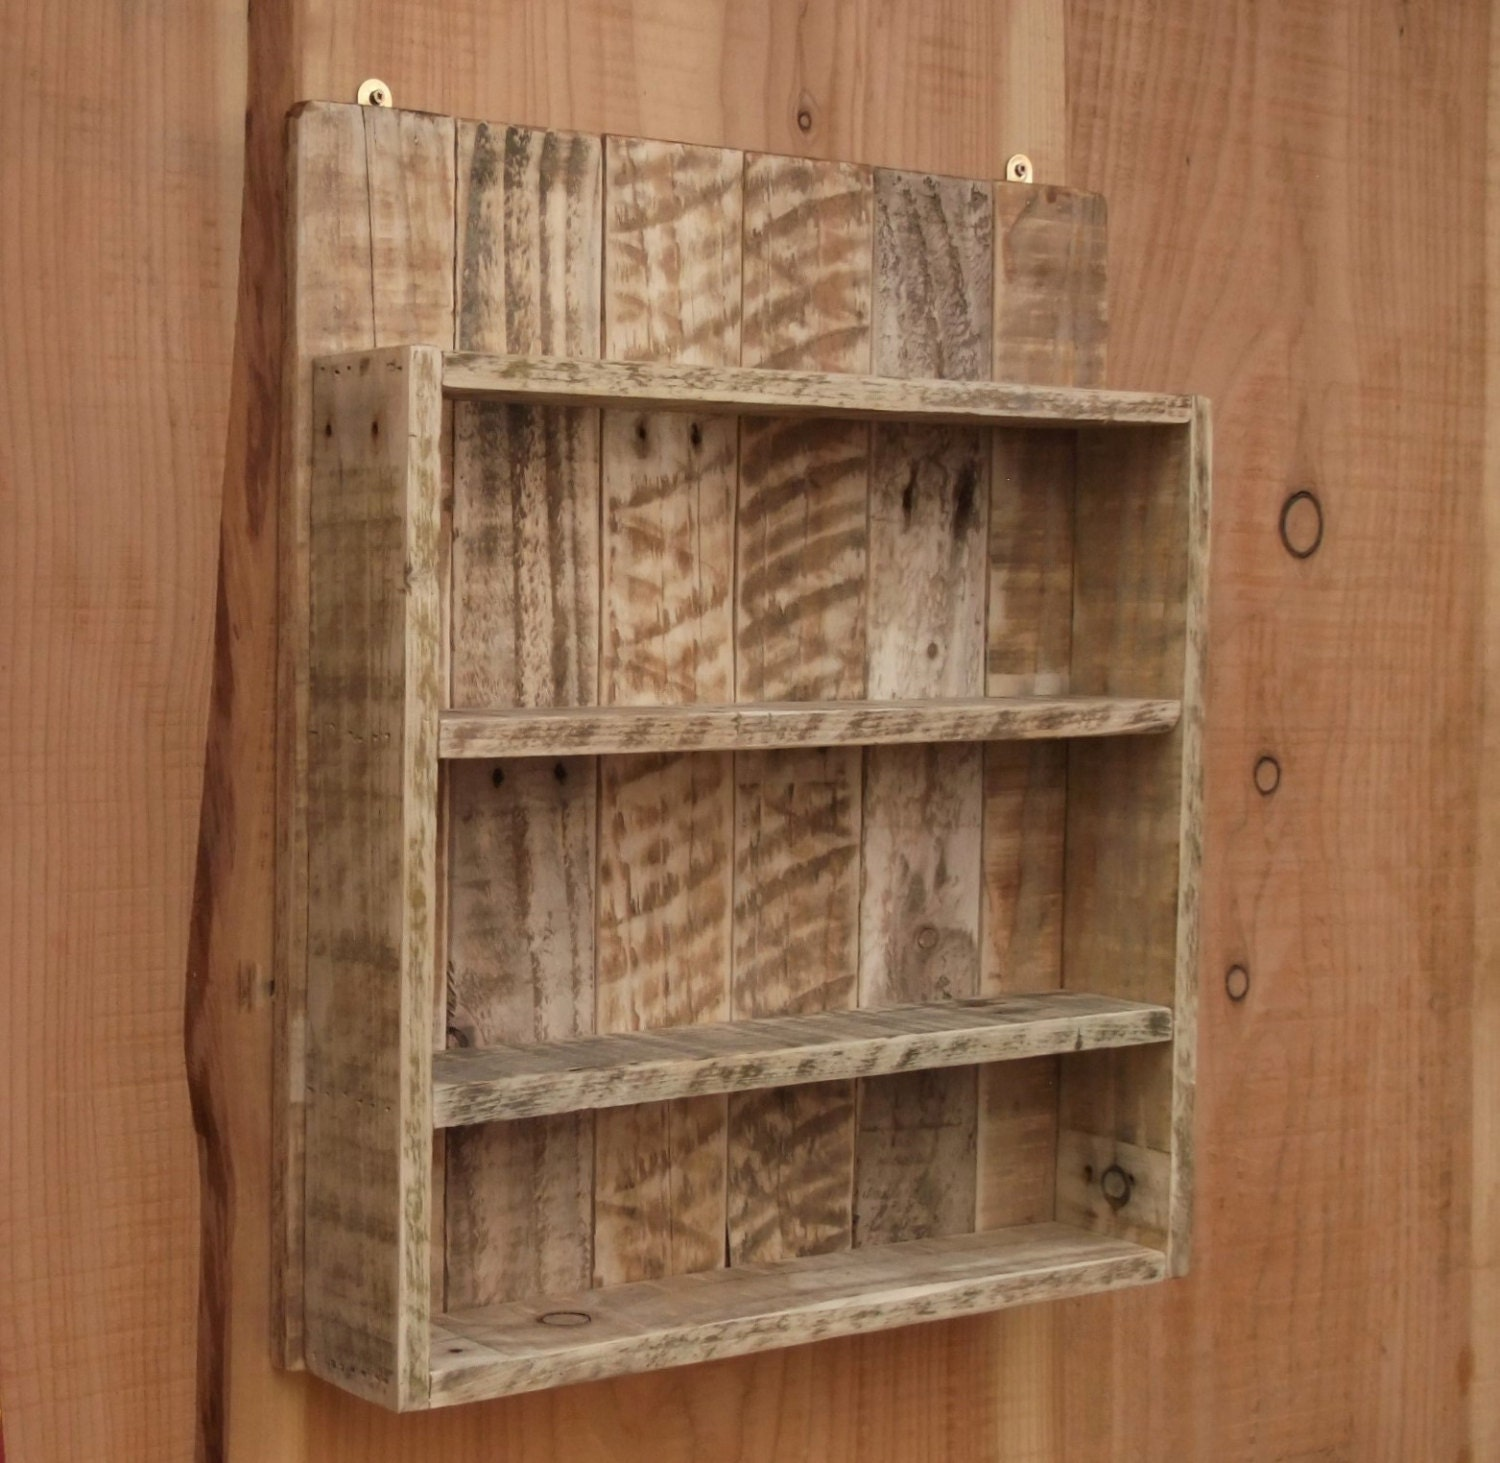 Rustic Spice Rack / Kitchen Shelf / Cabinet Made From